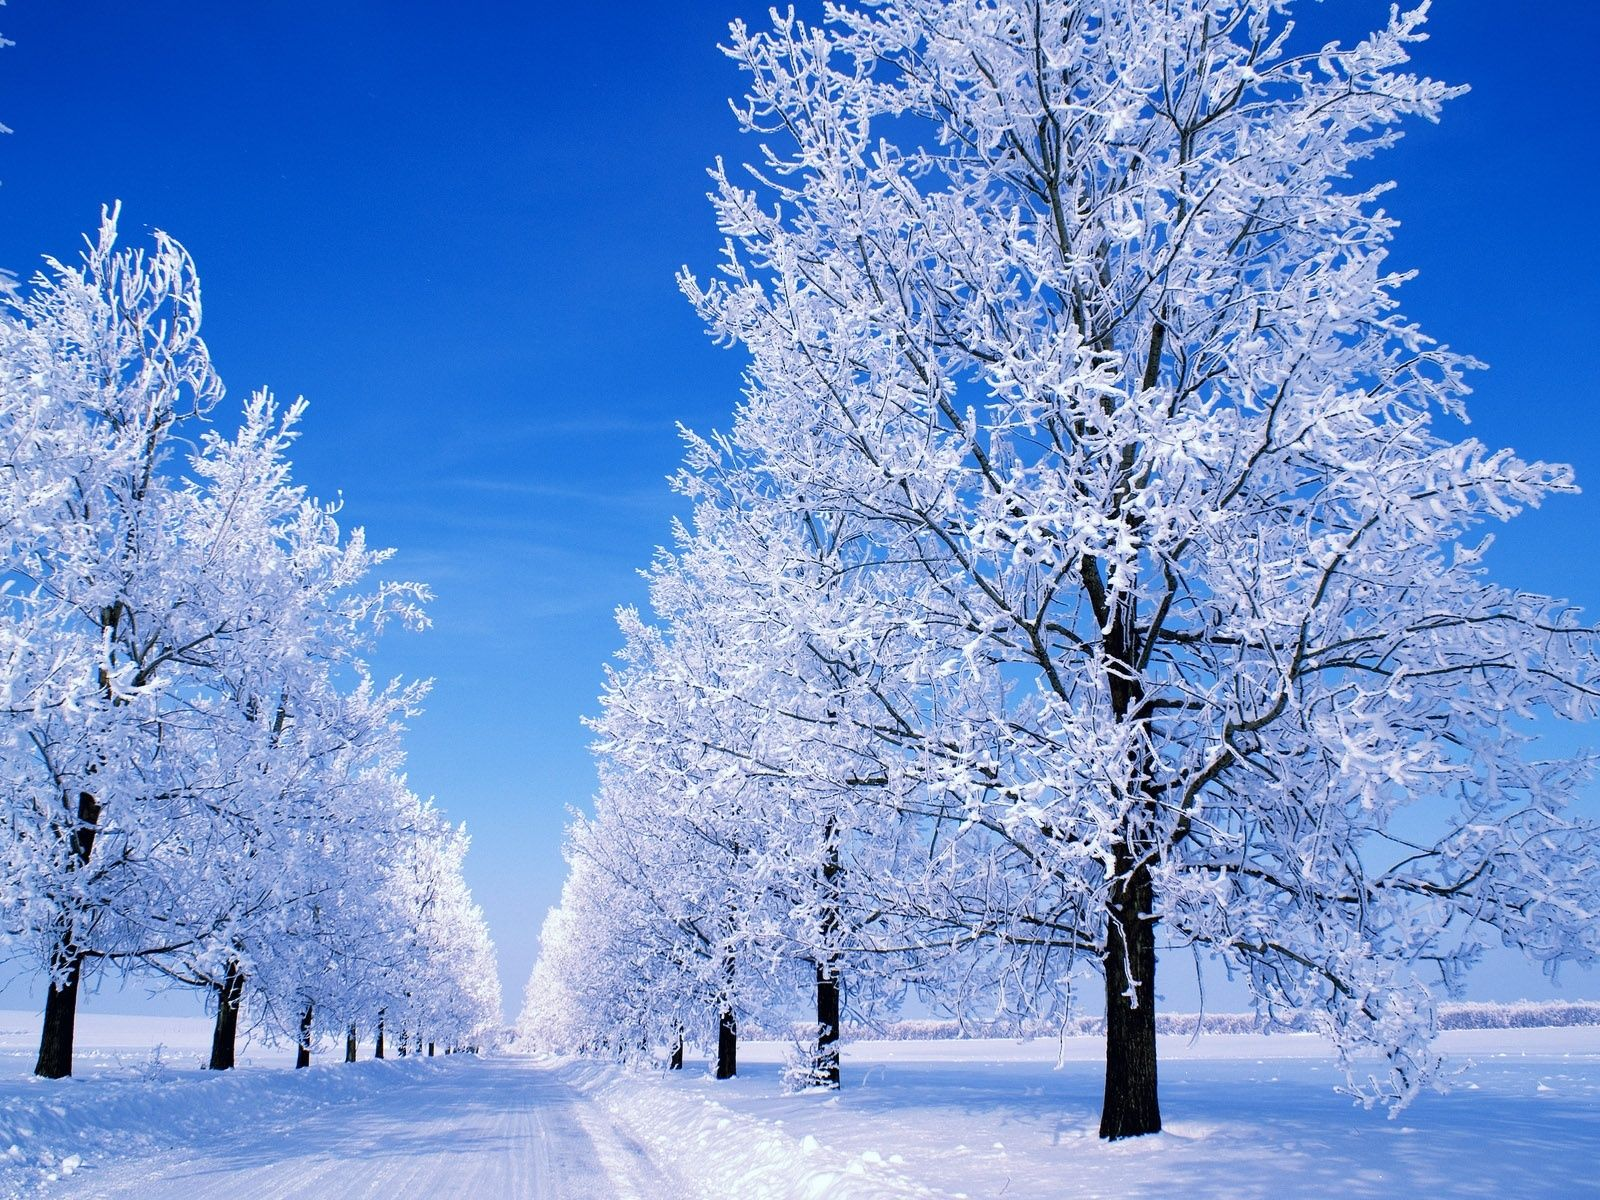 Winter scenes 1600x1200 great winter snowy scene desktop winter scenes 1600x1200 great winter snowy scene desktop wallpapers and stock photos voltagebd Image collections